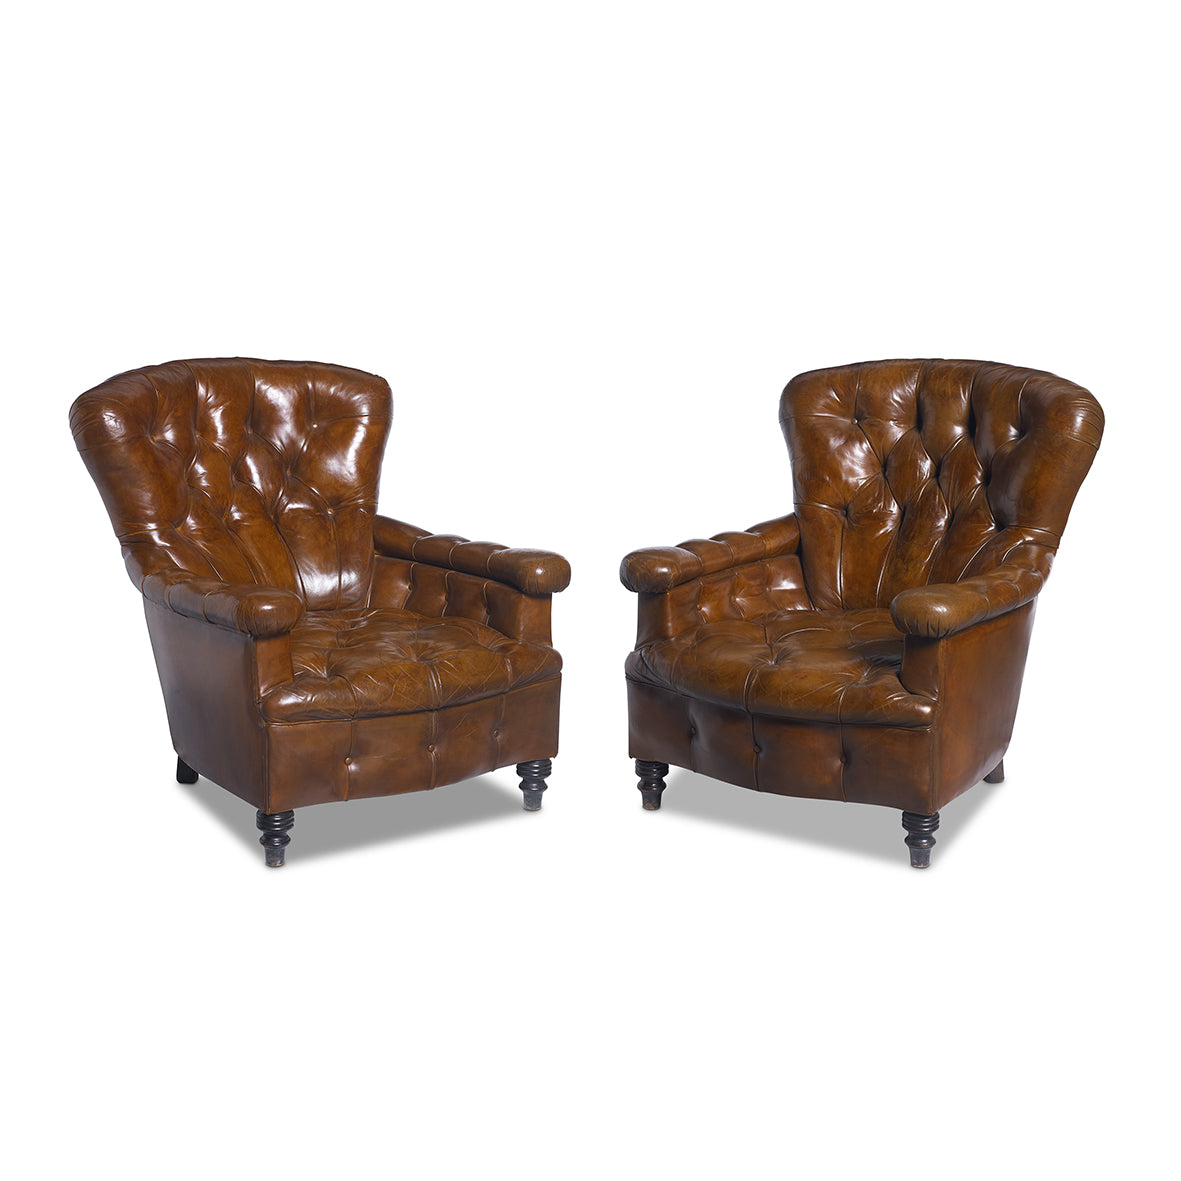 An outstanding pair of buttoned tan leather armchairs, French, 19th Century